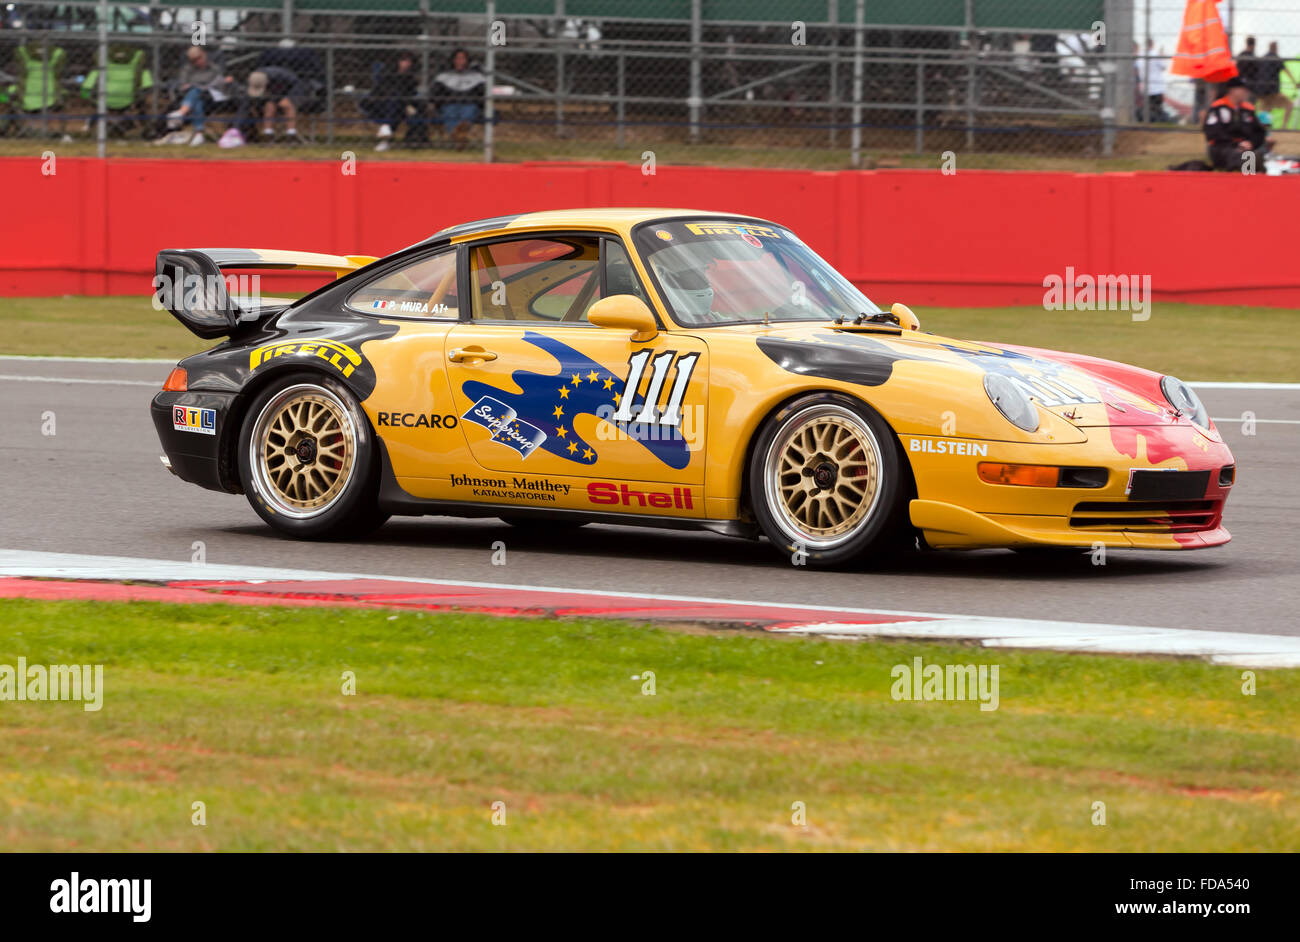 a porsche 993 gt2 racing car during a demonstration session of 90 39 s stock photo royalty free. Black Bedroom Furniture Sets. Home Design Ideas